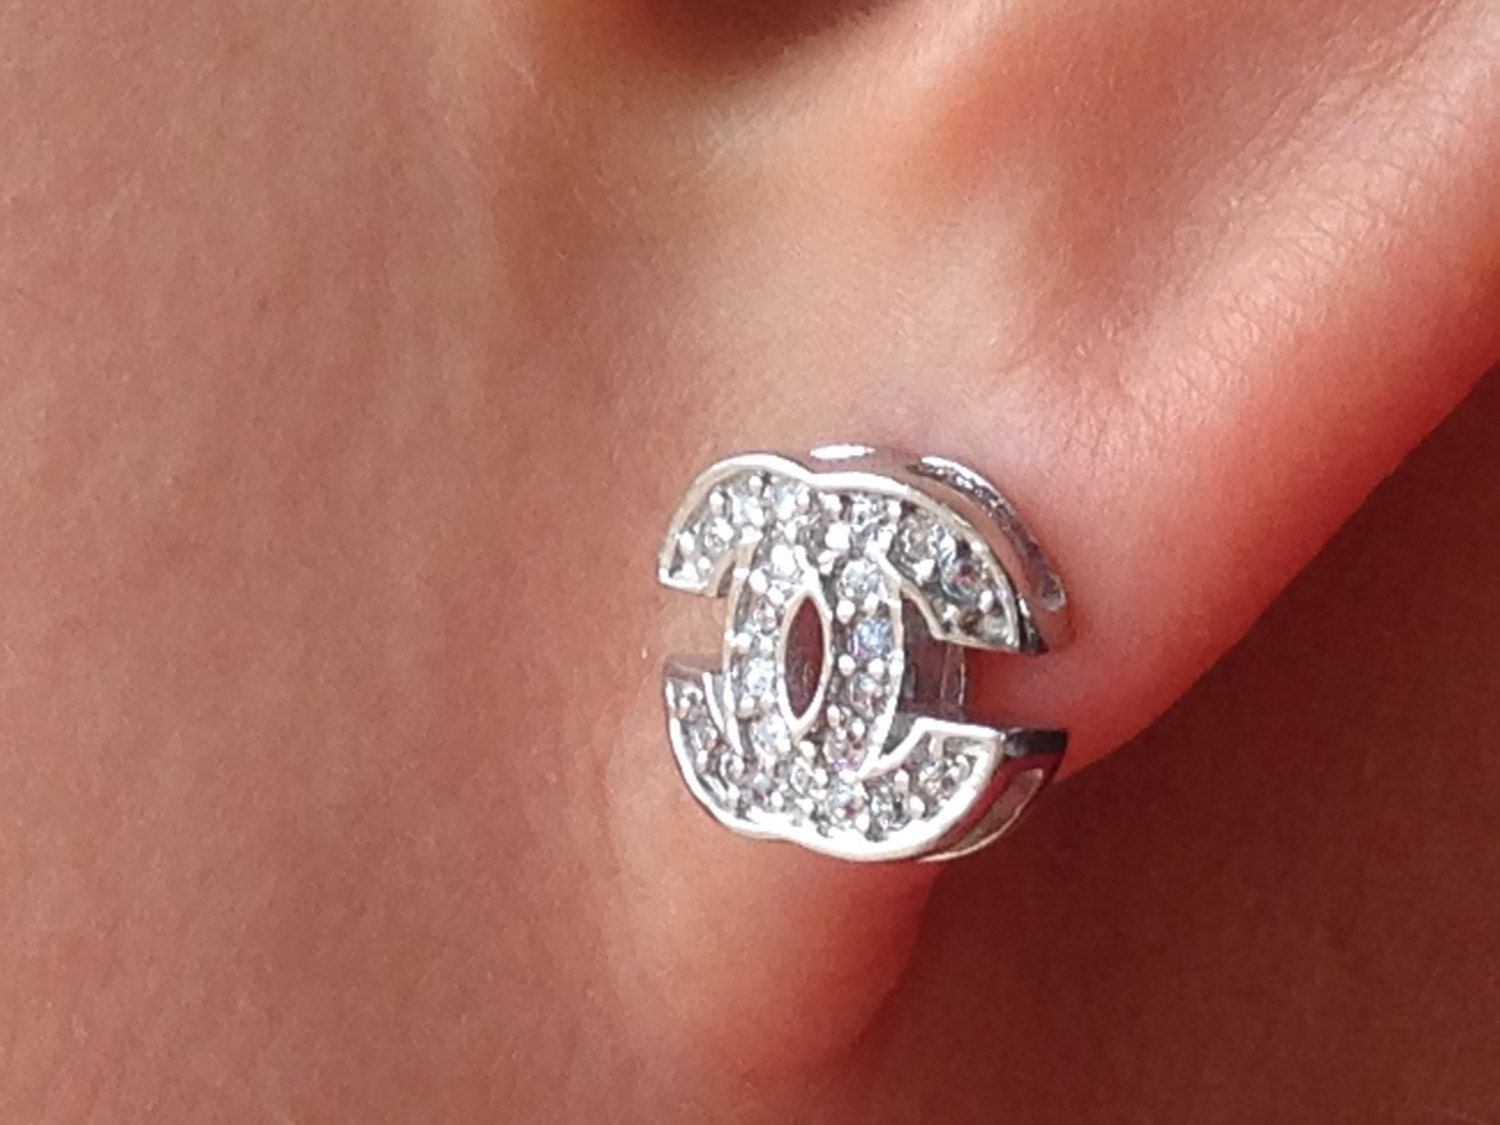 chanel style earrings sparkly cz diamond 14k white gold. Black Bedroom Furniture Sets. Home Design Ideas